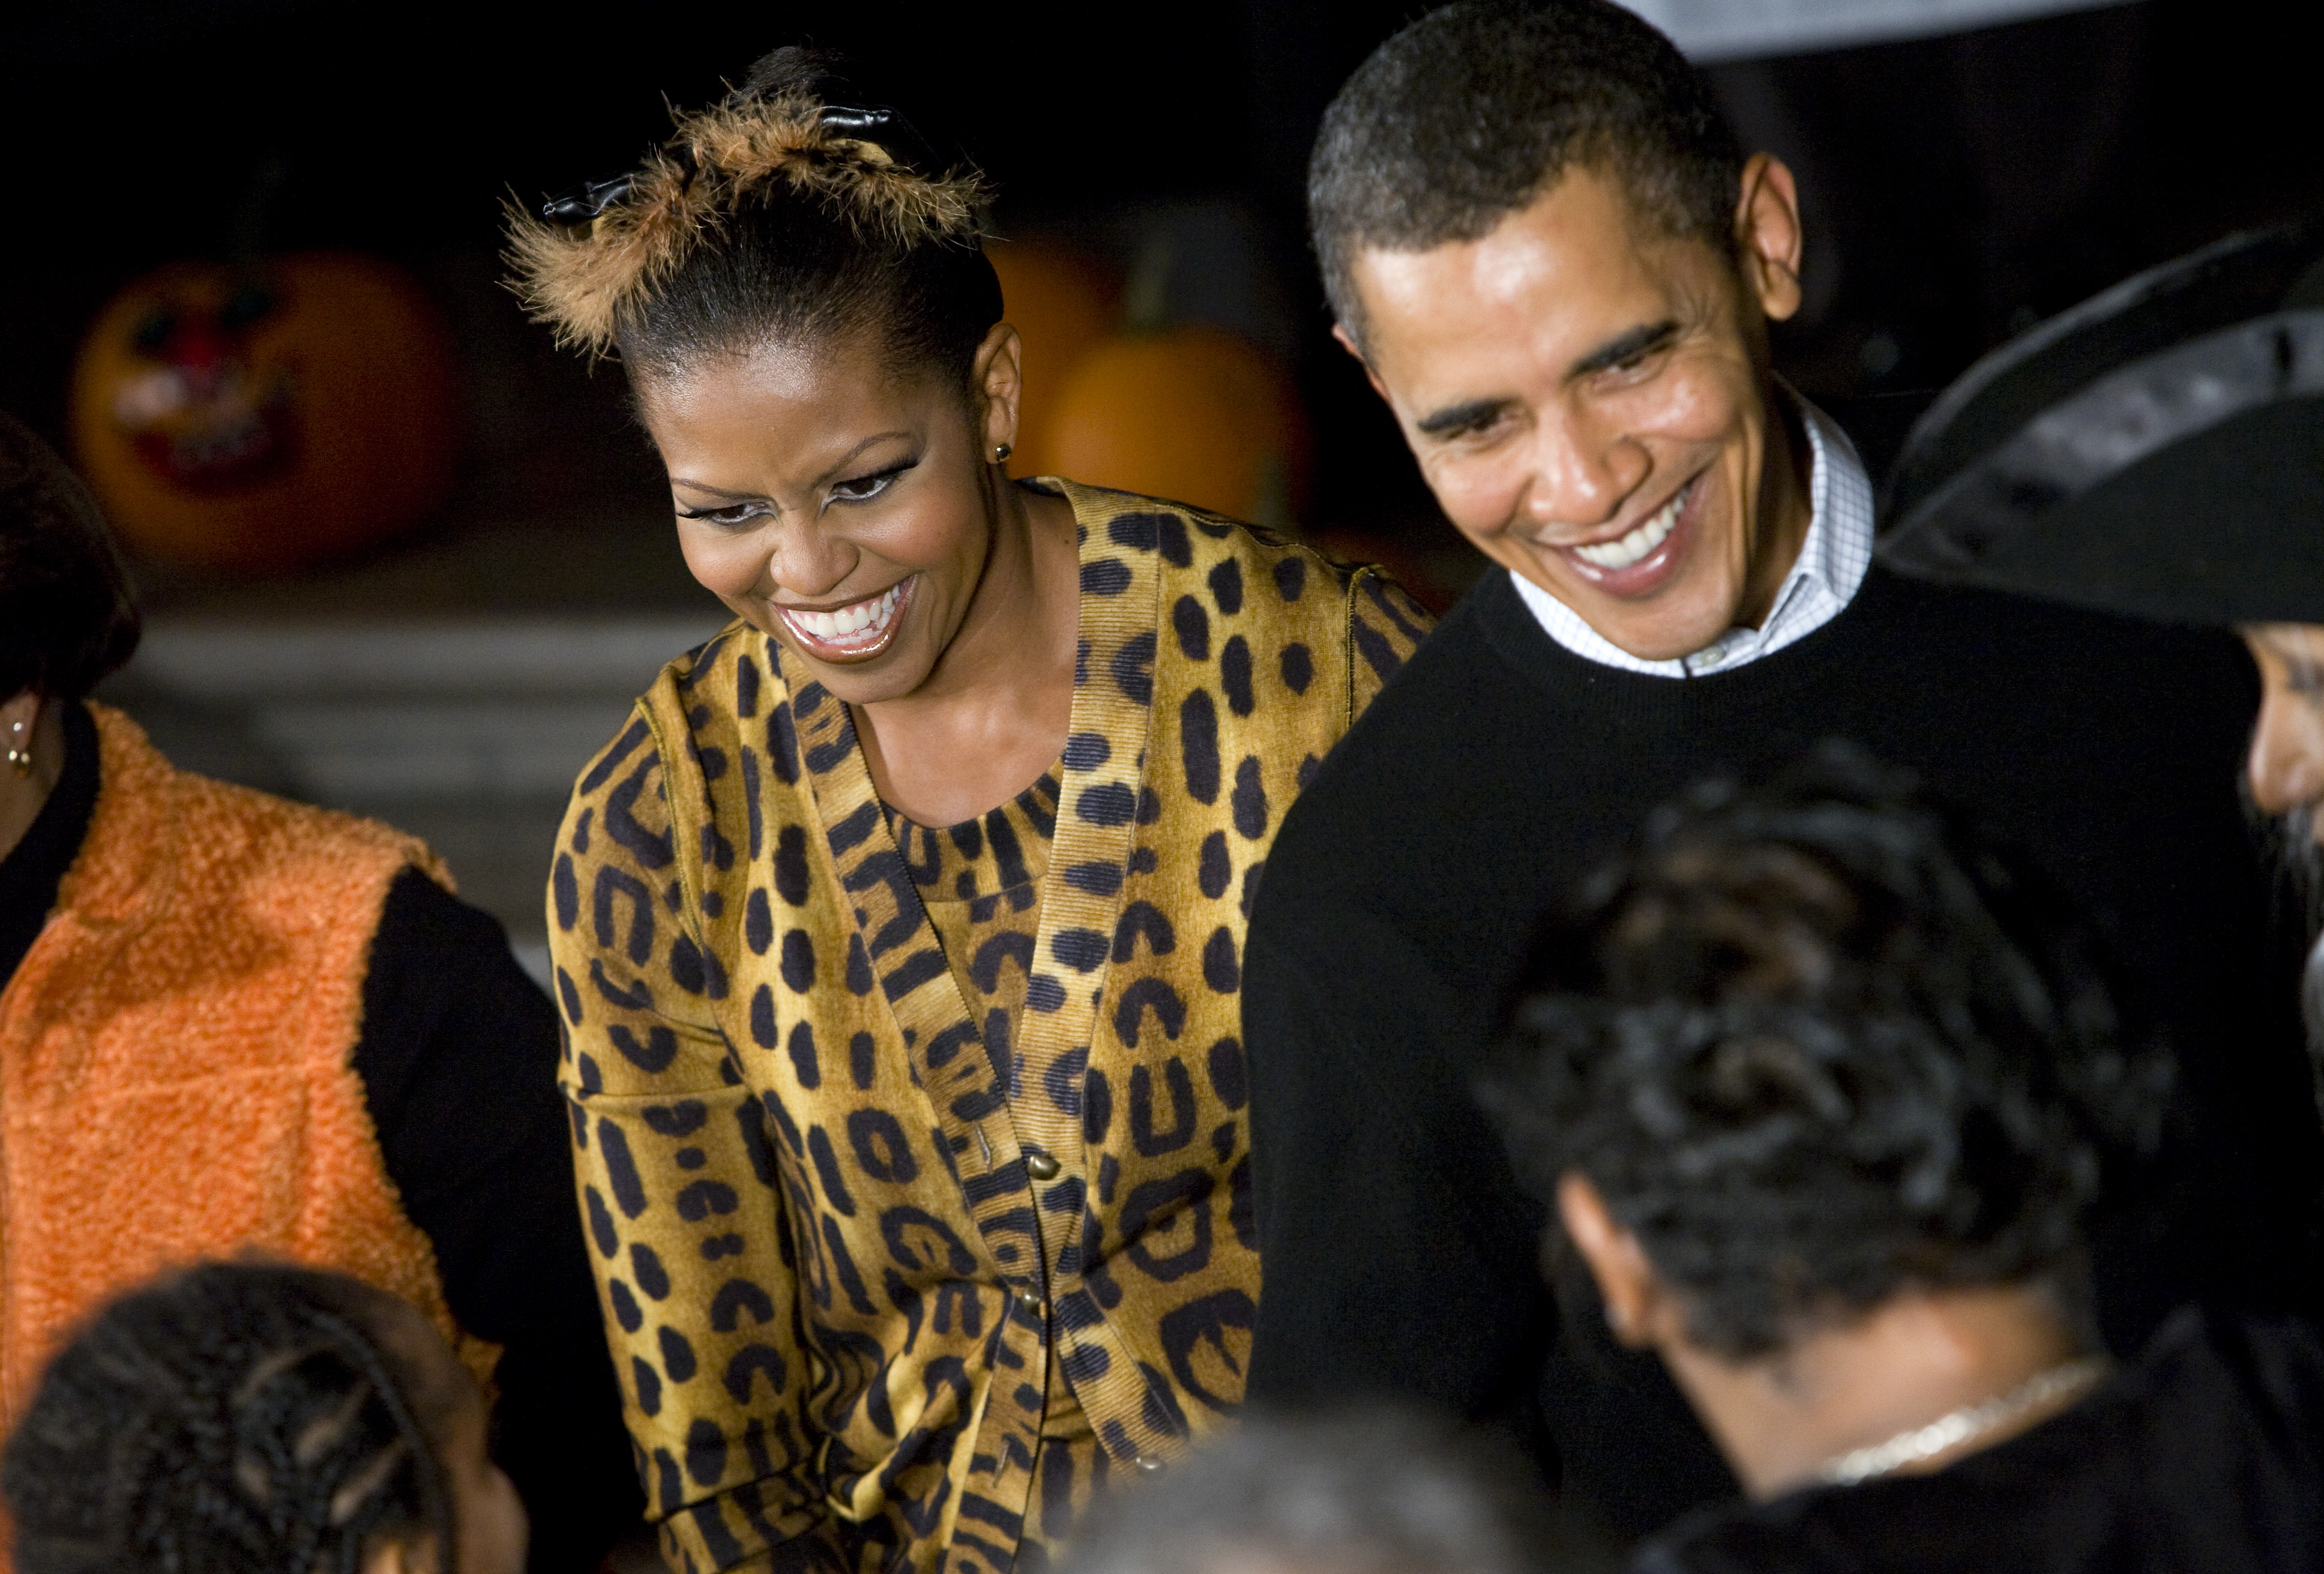 michelle obama halloween costume photo album - best fashion trends